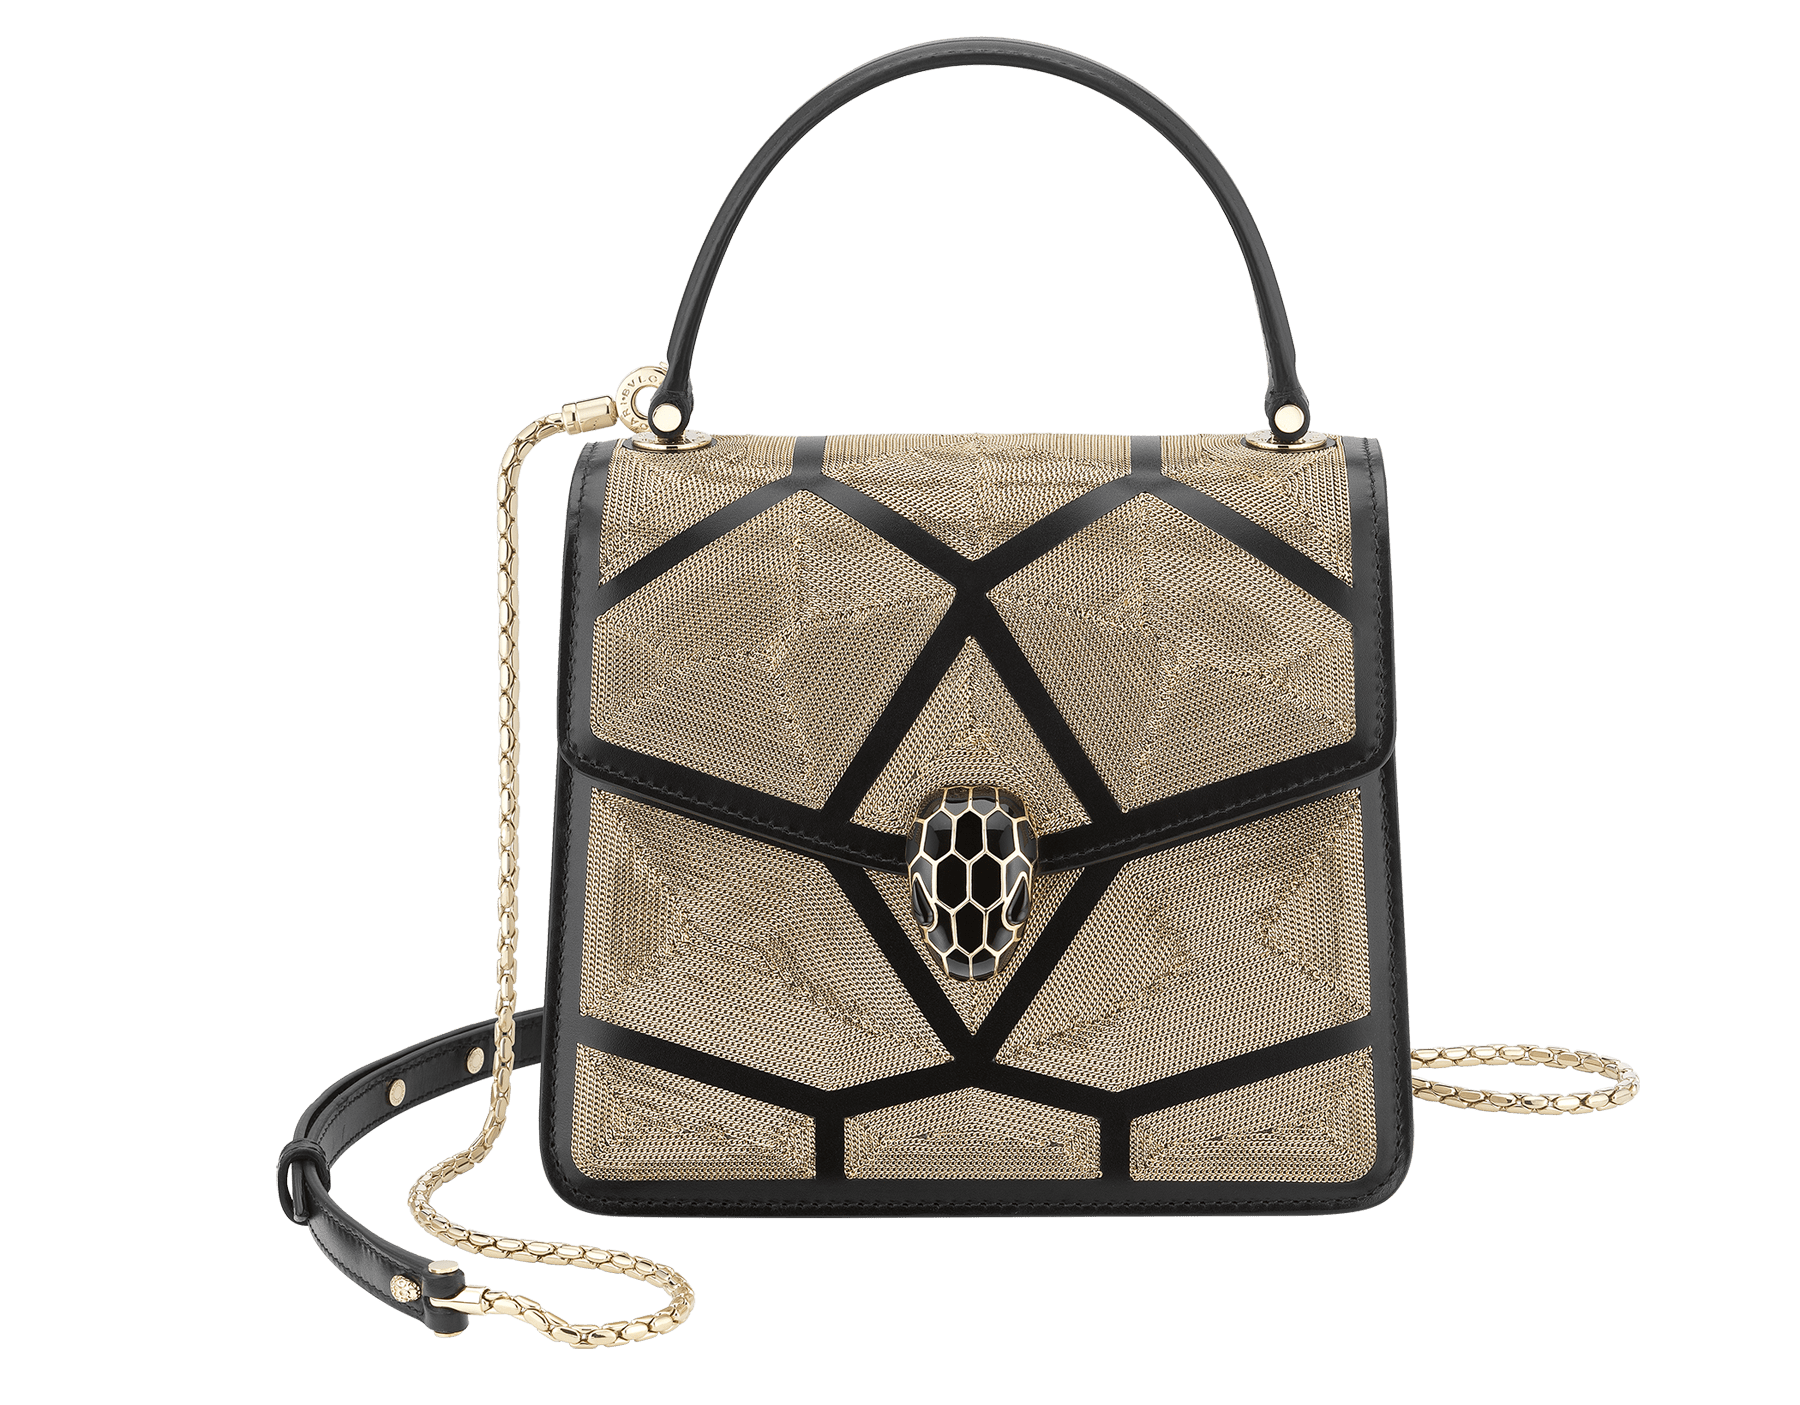 """Serpenti Forever"" crossbody bag in black calf leather and Million Chain motif body and black calf leather sides. Iconic snake head closure in light gold-plated brass enriched with black enamel and black onyx eyes. 752-CP image 1"